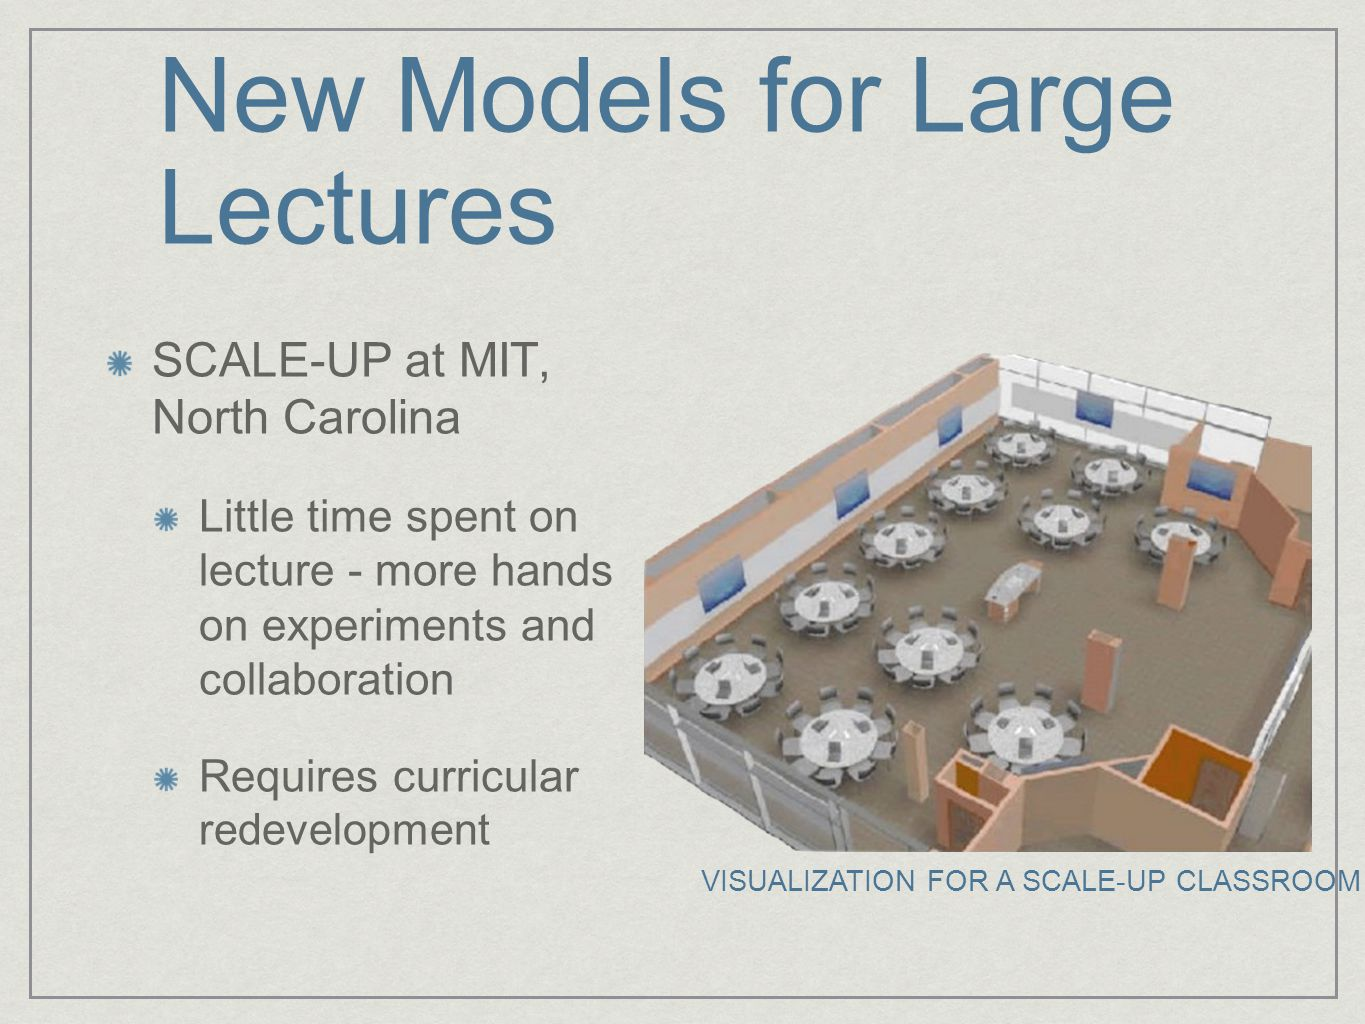 New Models for Large Lectures SCALE-UP at MIT, North Carolina Little time spent on lecture - more hands on experiments and collaboration Requires curricular redevelopment VISUALIZATION FOR A SCALE-UP CLASSROOM